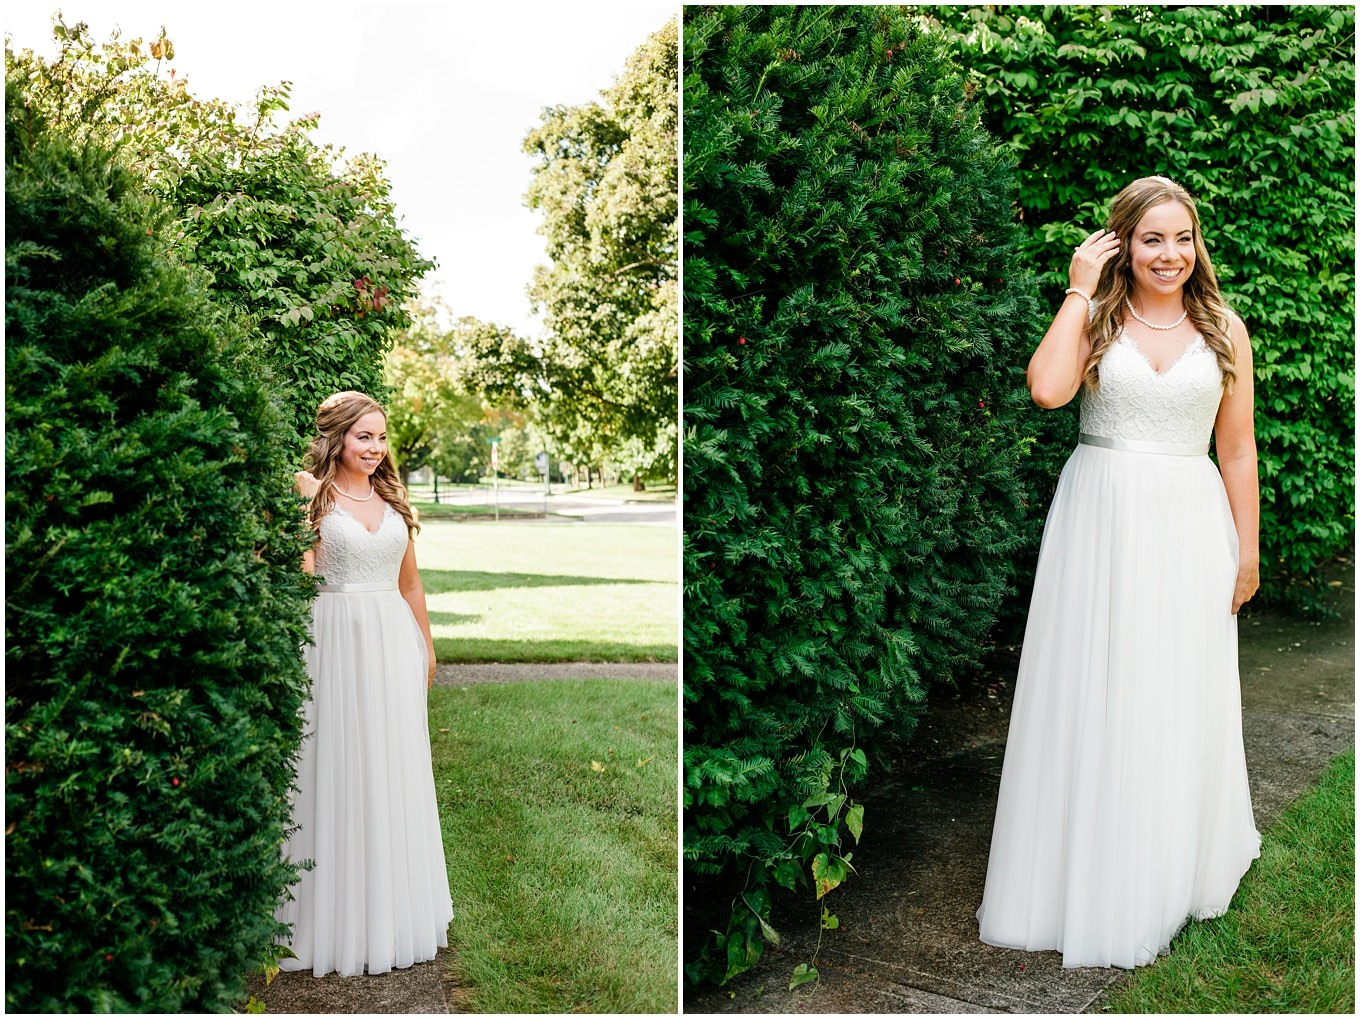 Adam Lowe Photography. wedding, columbus,ohio, fine art wedding, Vessel Floral and Event Design,Cheer Up Press,The Suisse Shoppe,Bosc + Brie,The Grange Insurance Audubon Cente,The Courtyard by Marriott at Grandview Yard,Joseph A. Bank,